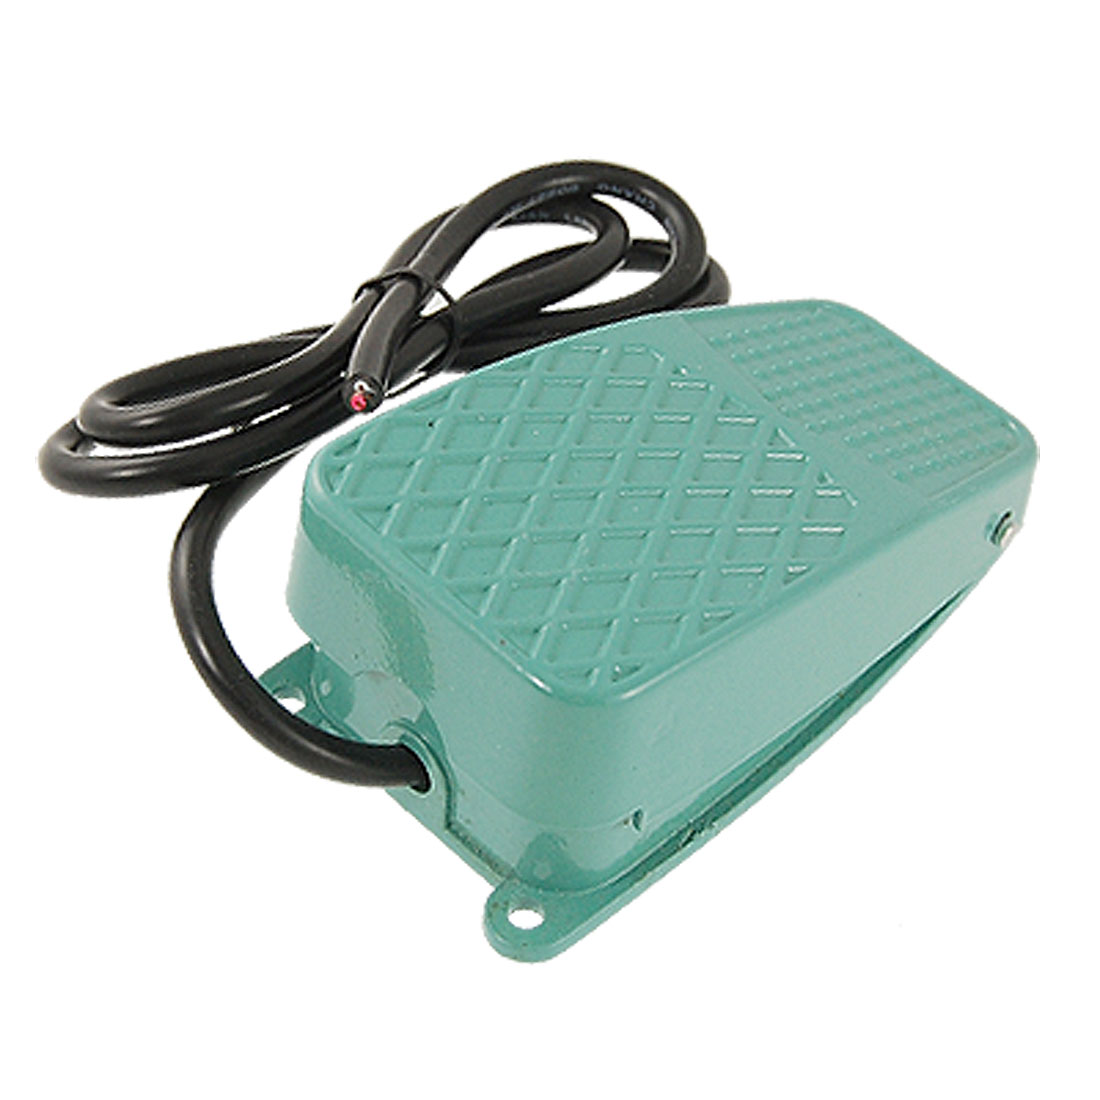 AC 250V 10A SPDT NO NC Nonslip Metal Momentary Power Foot Pedal Switch Green